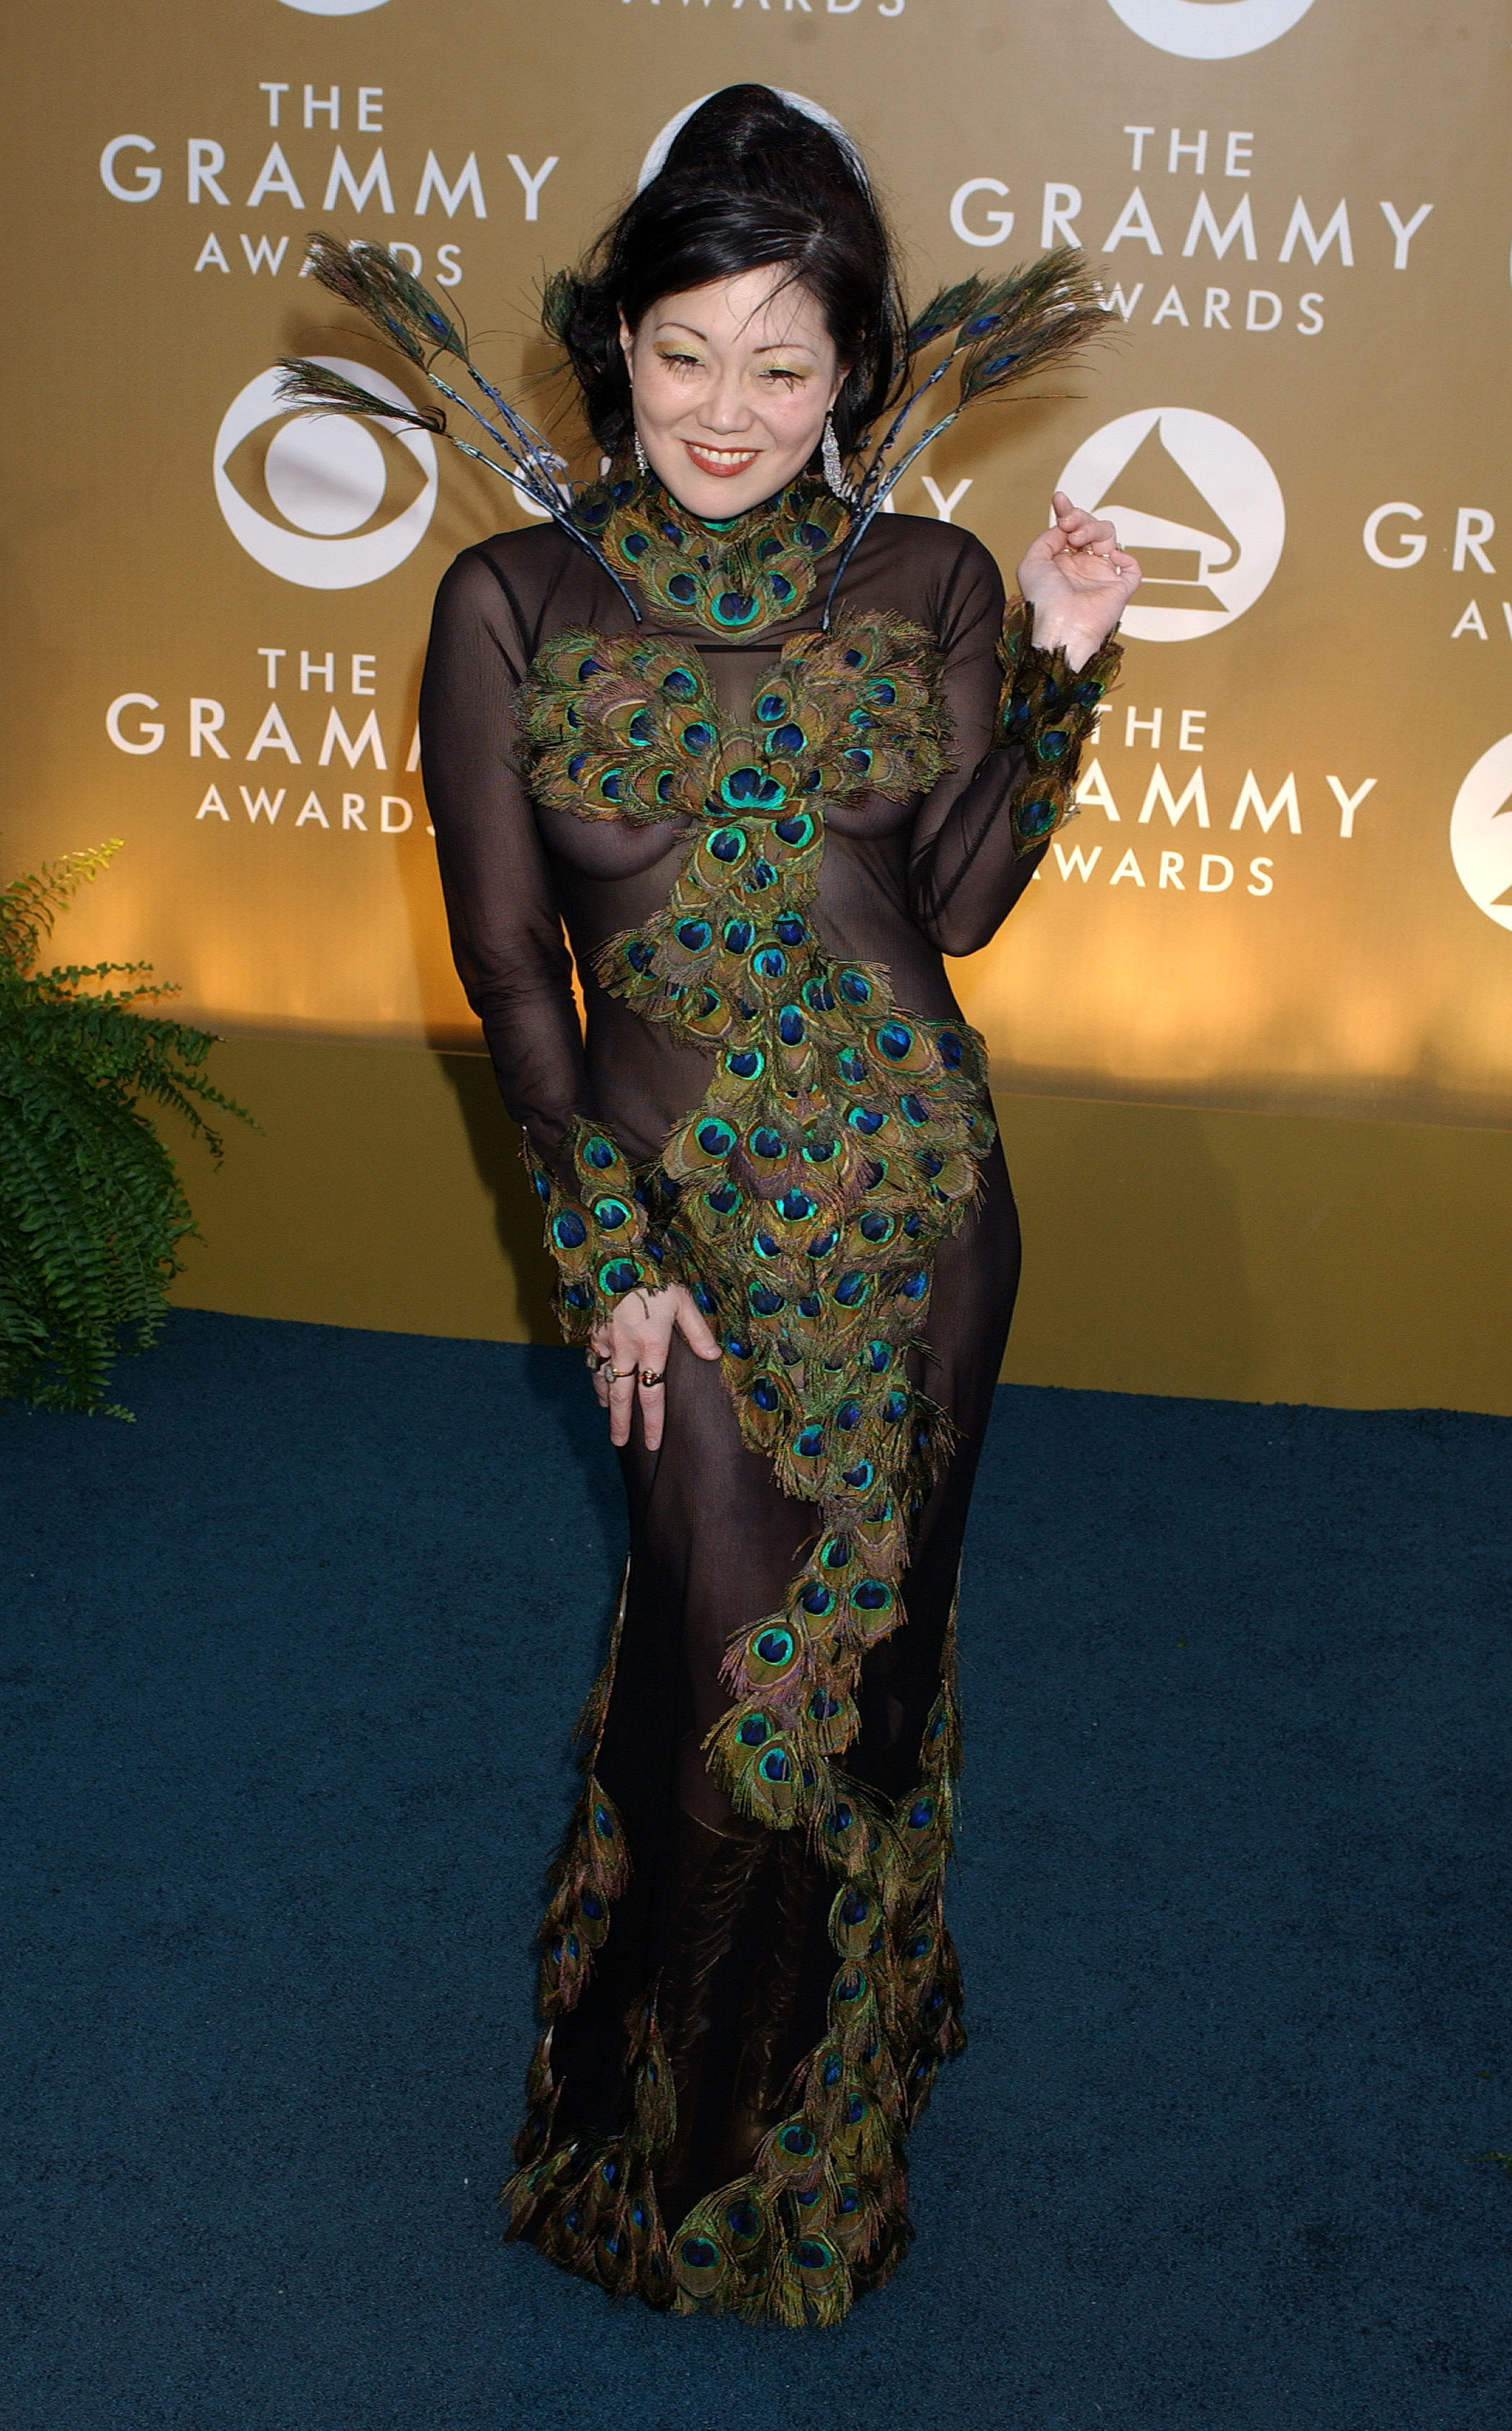 Margaret Cho 2004 The Most Outrageous Grammy Awards